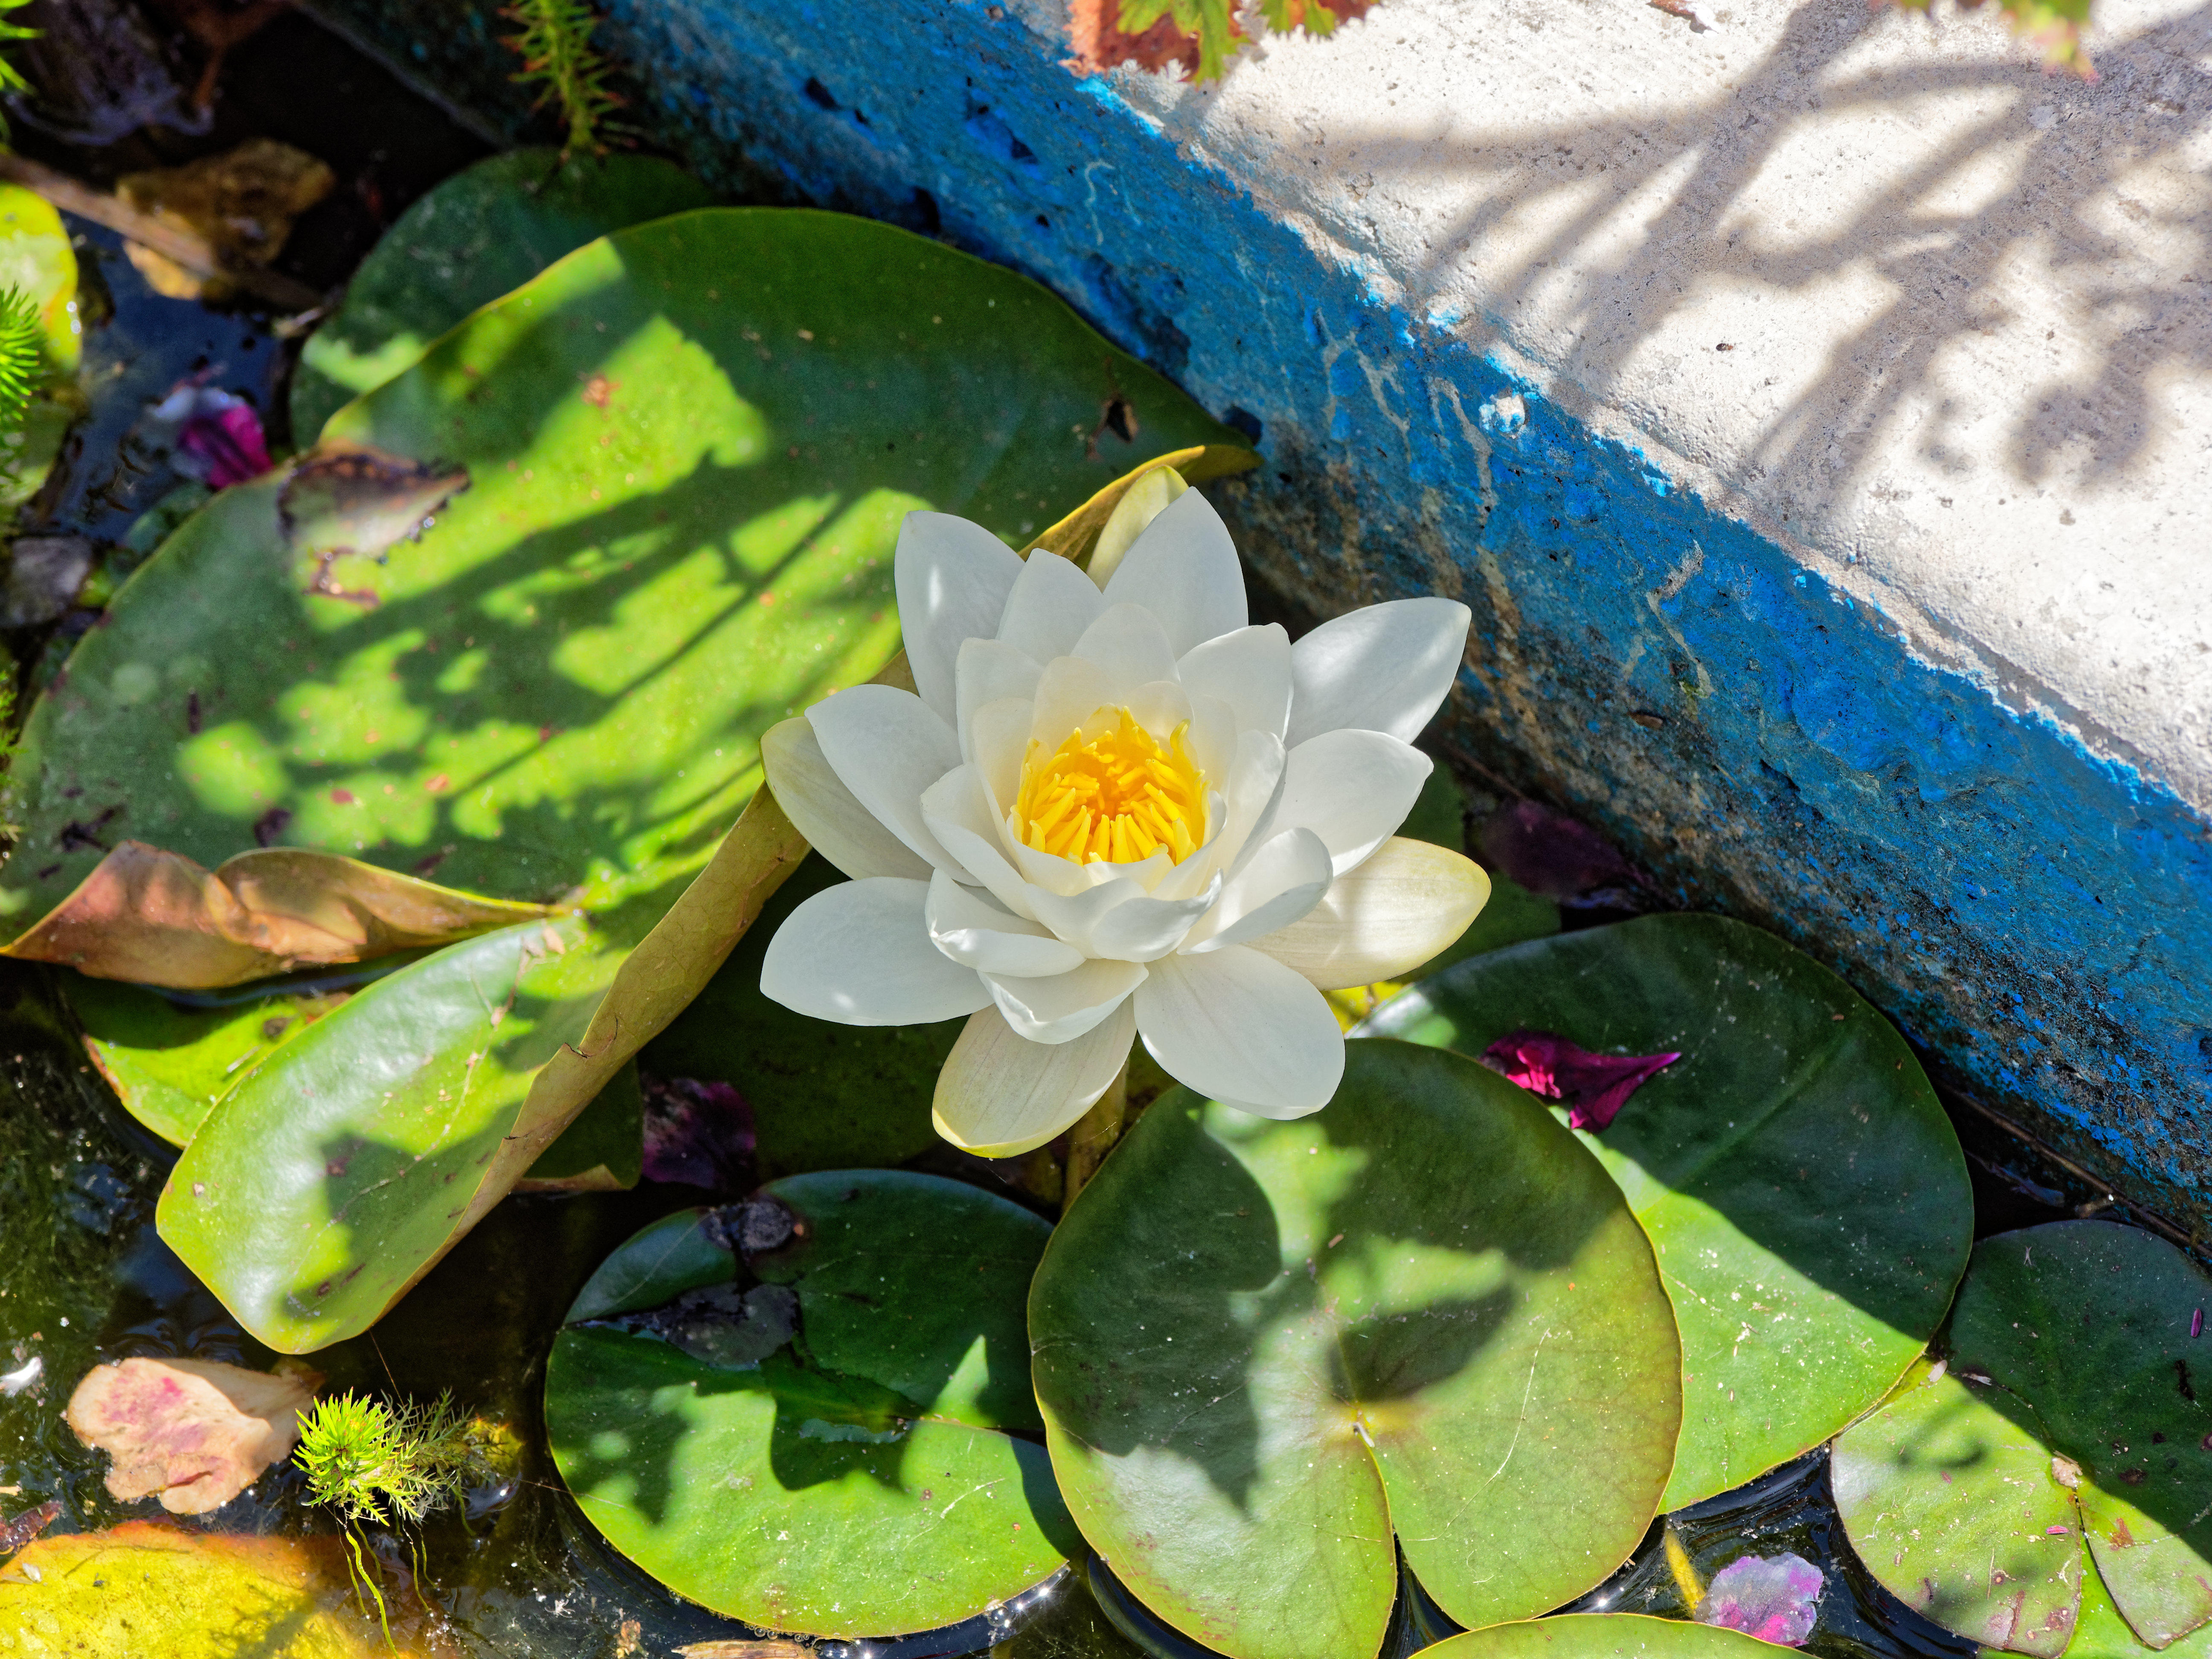 This should be Water-lily.jpeg.  Is it missing?